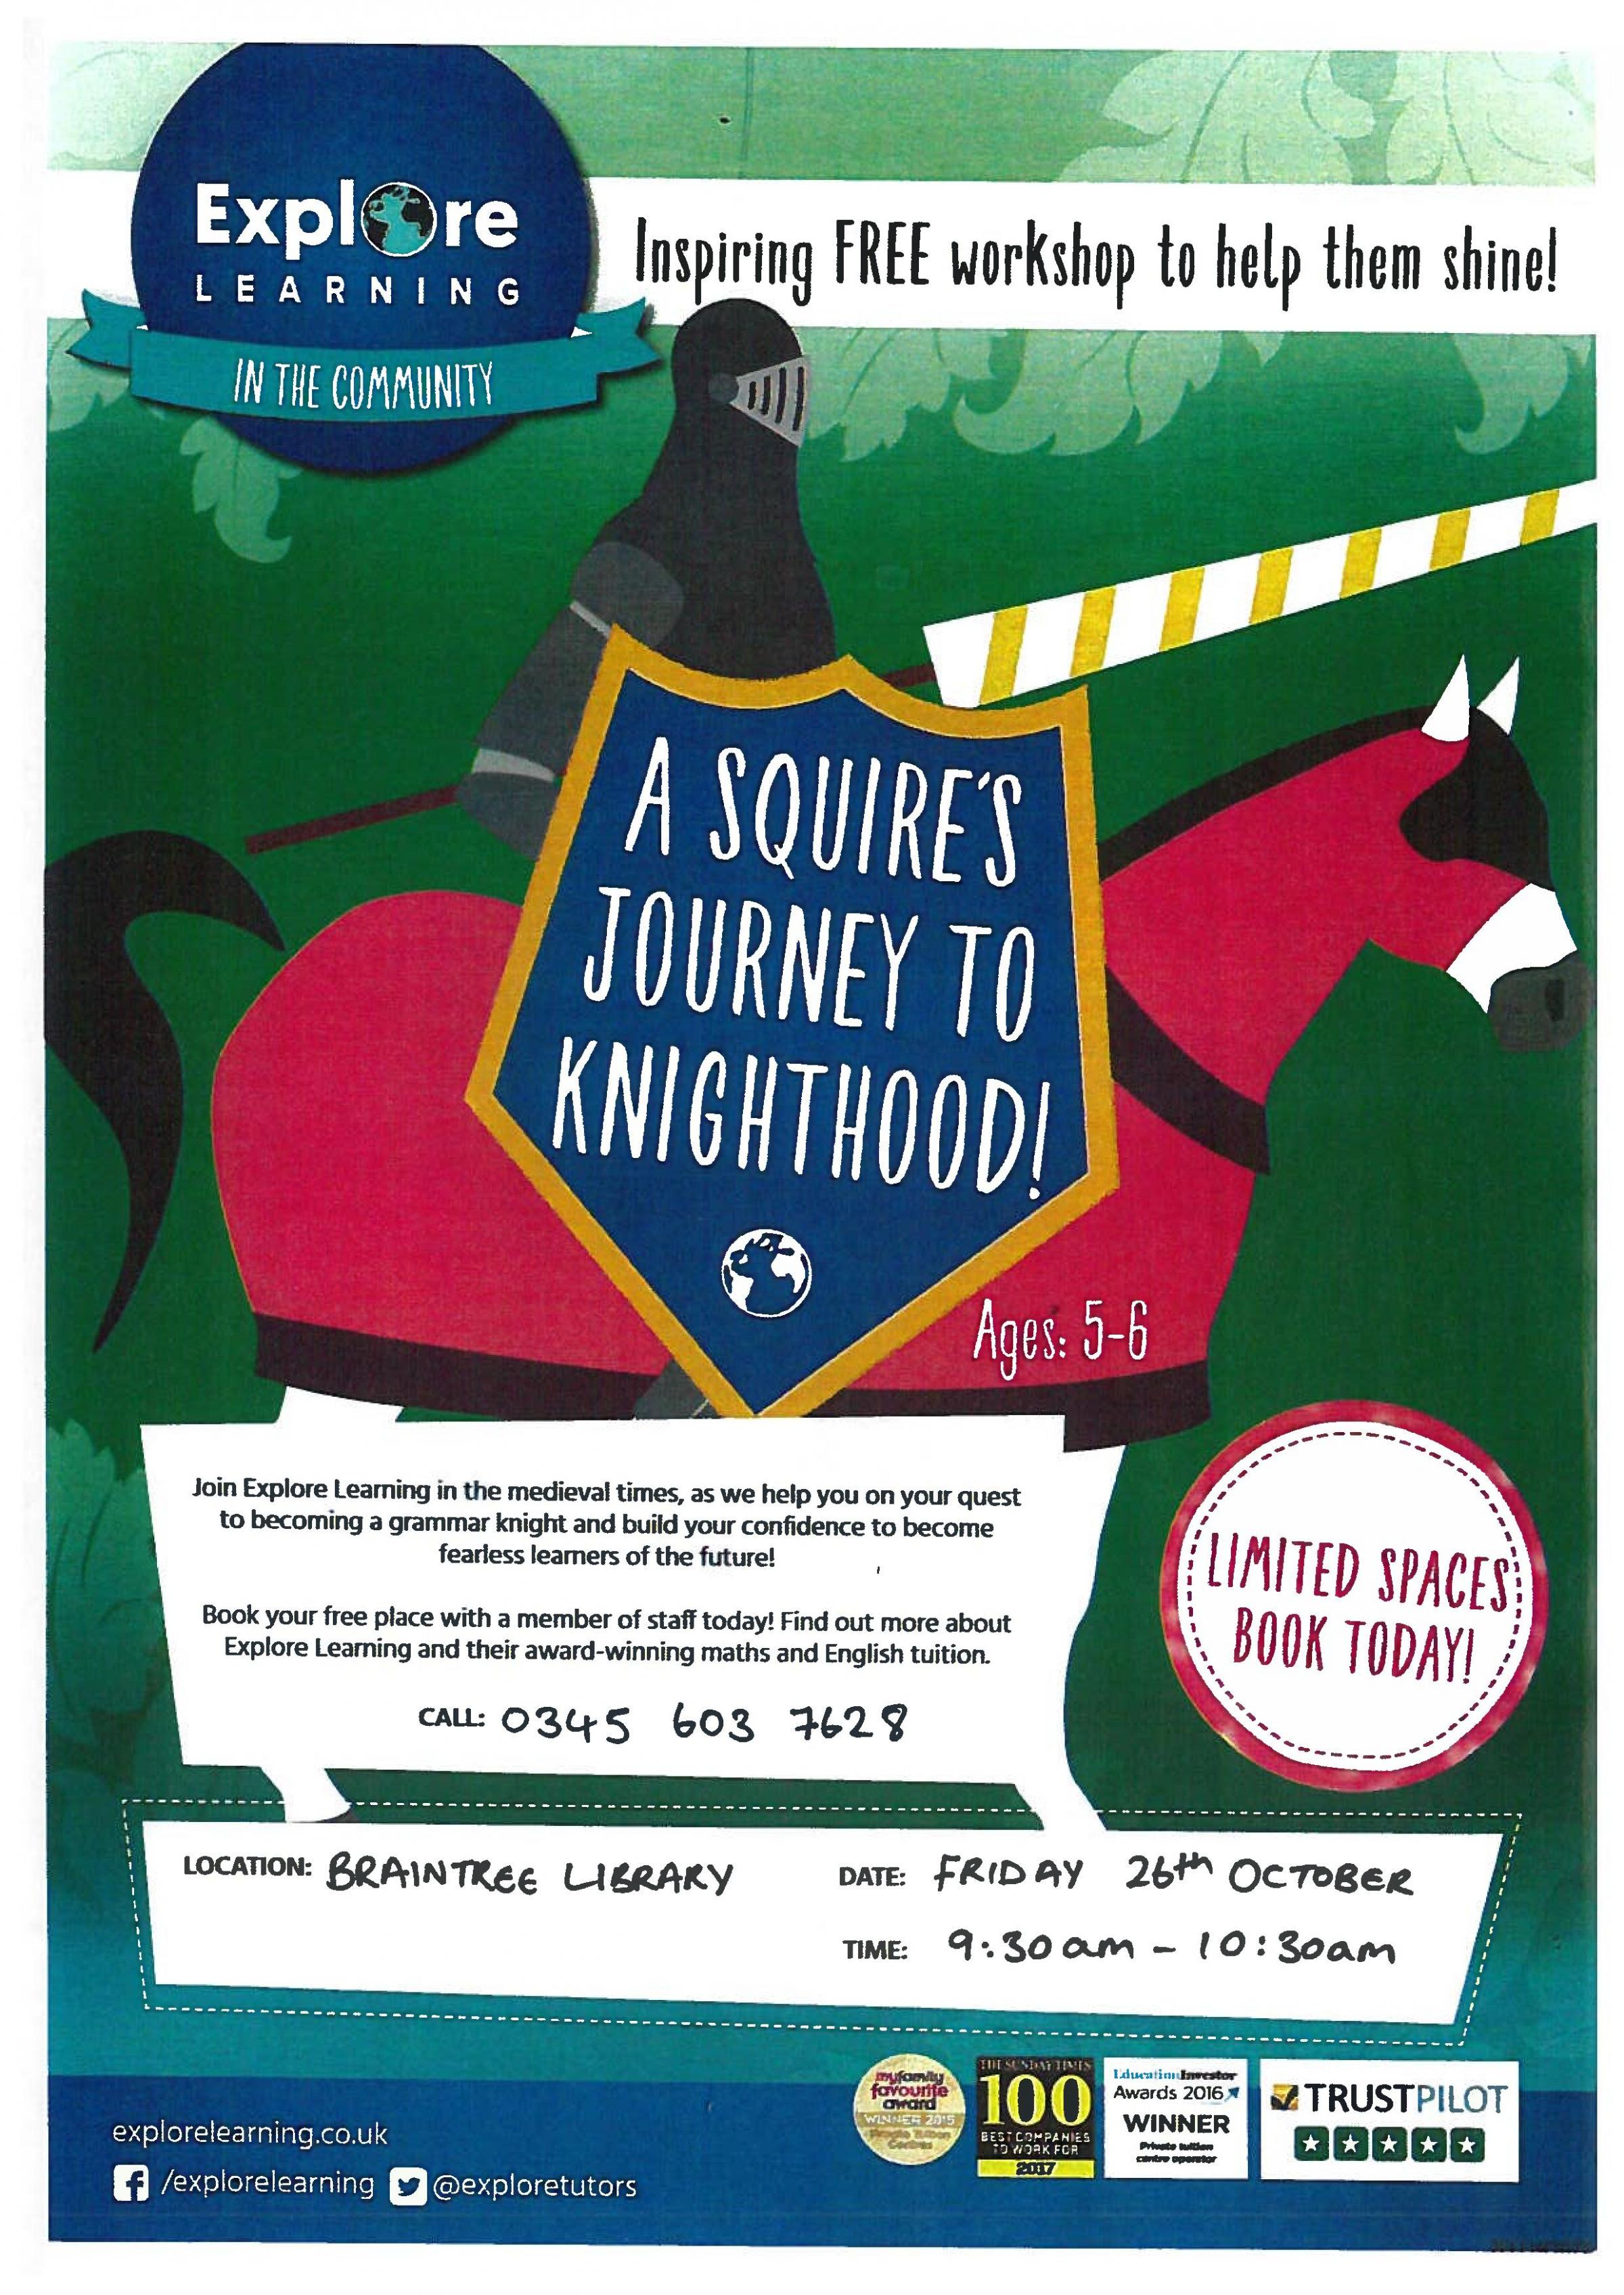 Explore Learning Workshop - A Squire's Journey to Knighthood